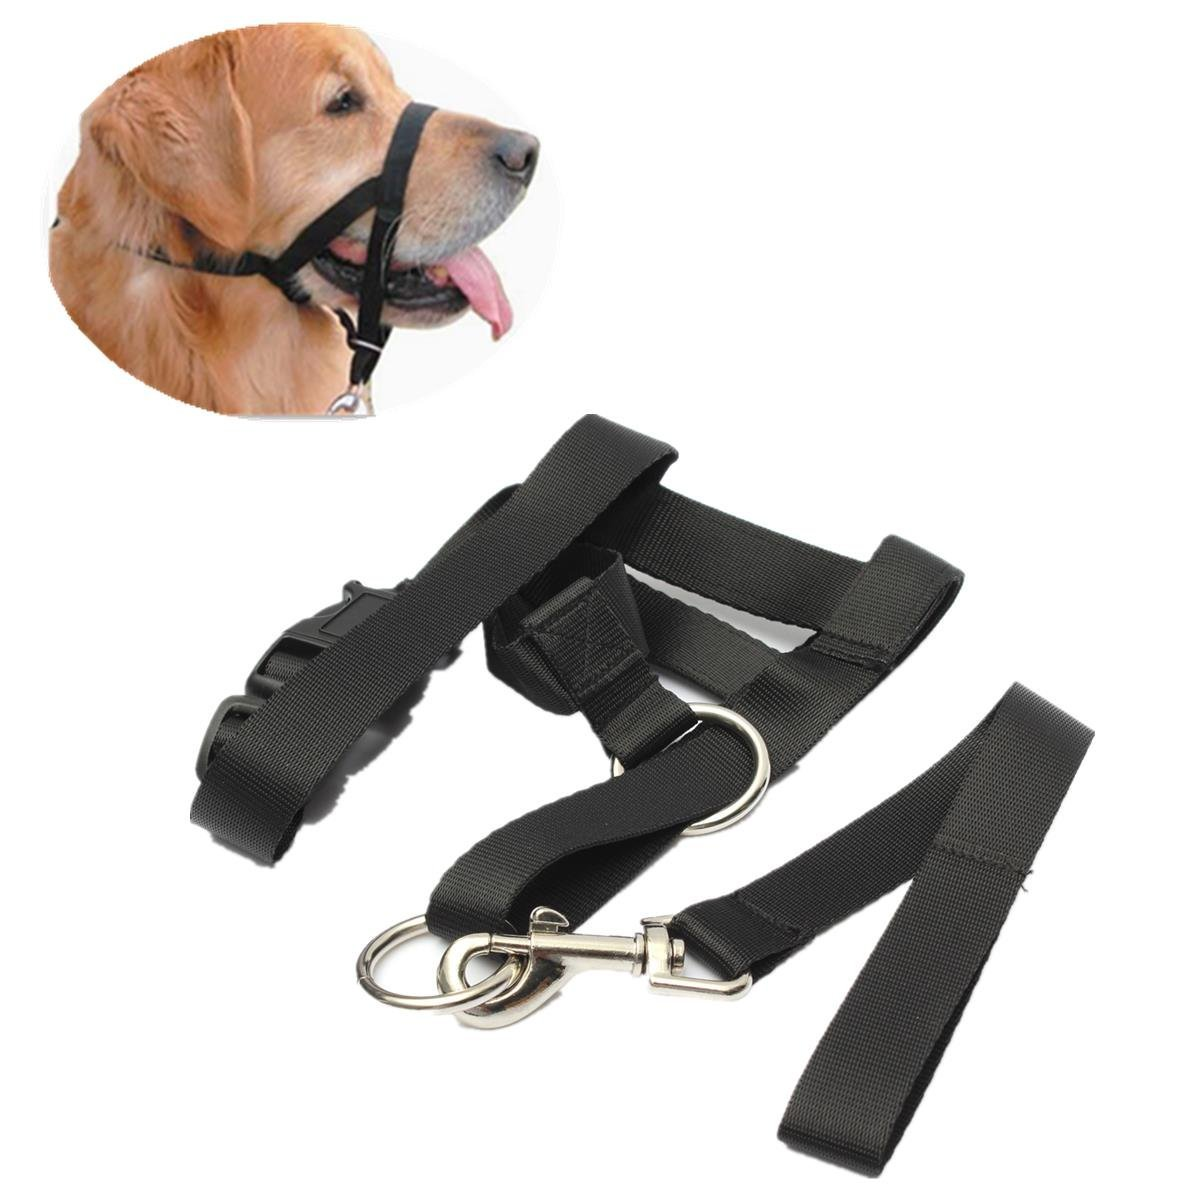 Canis Familiaris Changeable Gag - Dog Puppy Nylon Adjustable Buckle Muzzle Barking Ventilation Black - Frump Pawl Cad Tail Changeful Gun Firedog Bounder Andiron Chase Hound - 1PCs